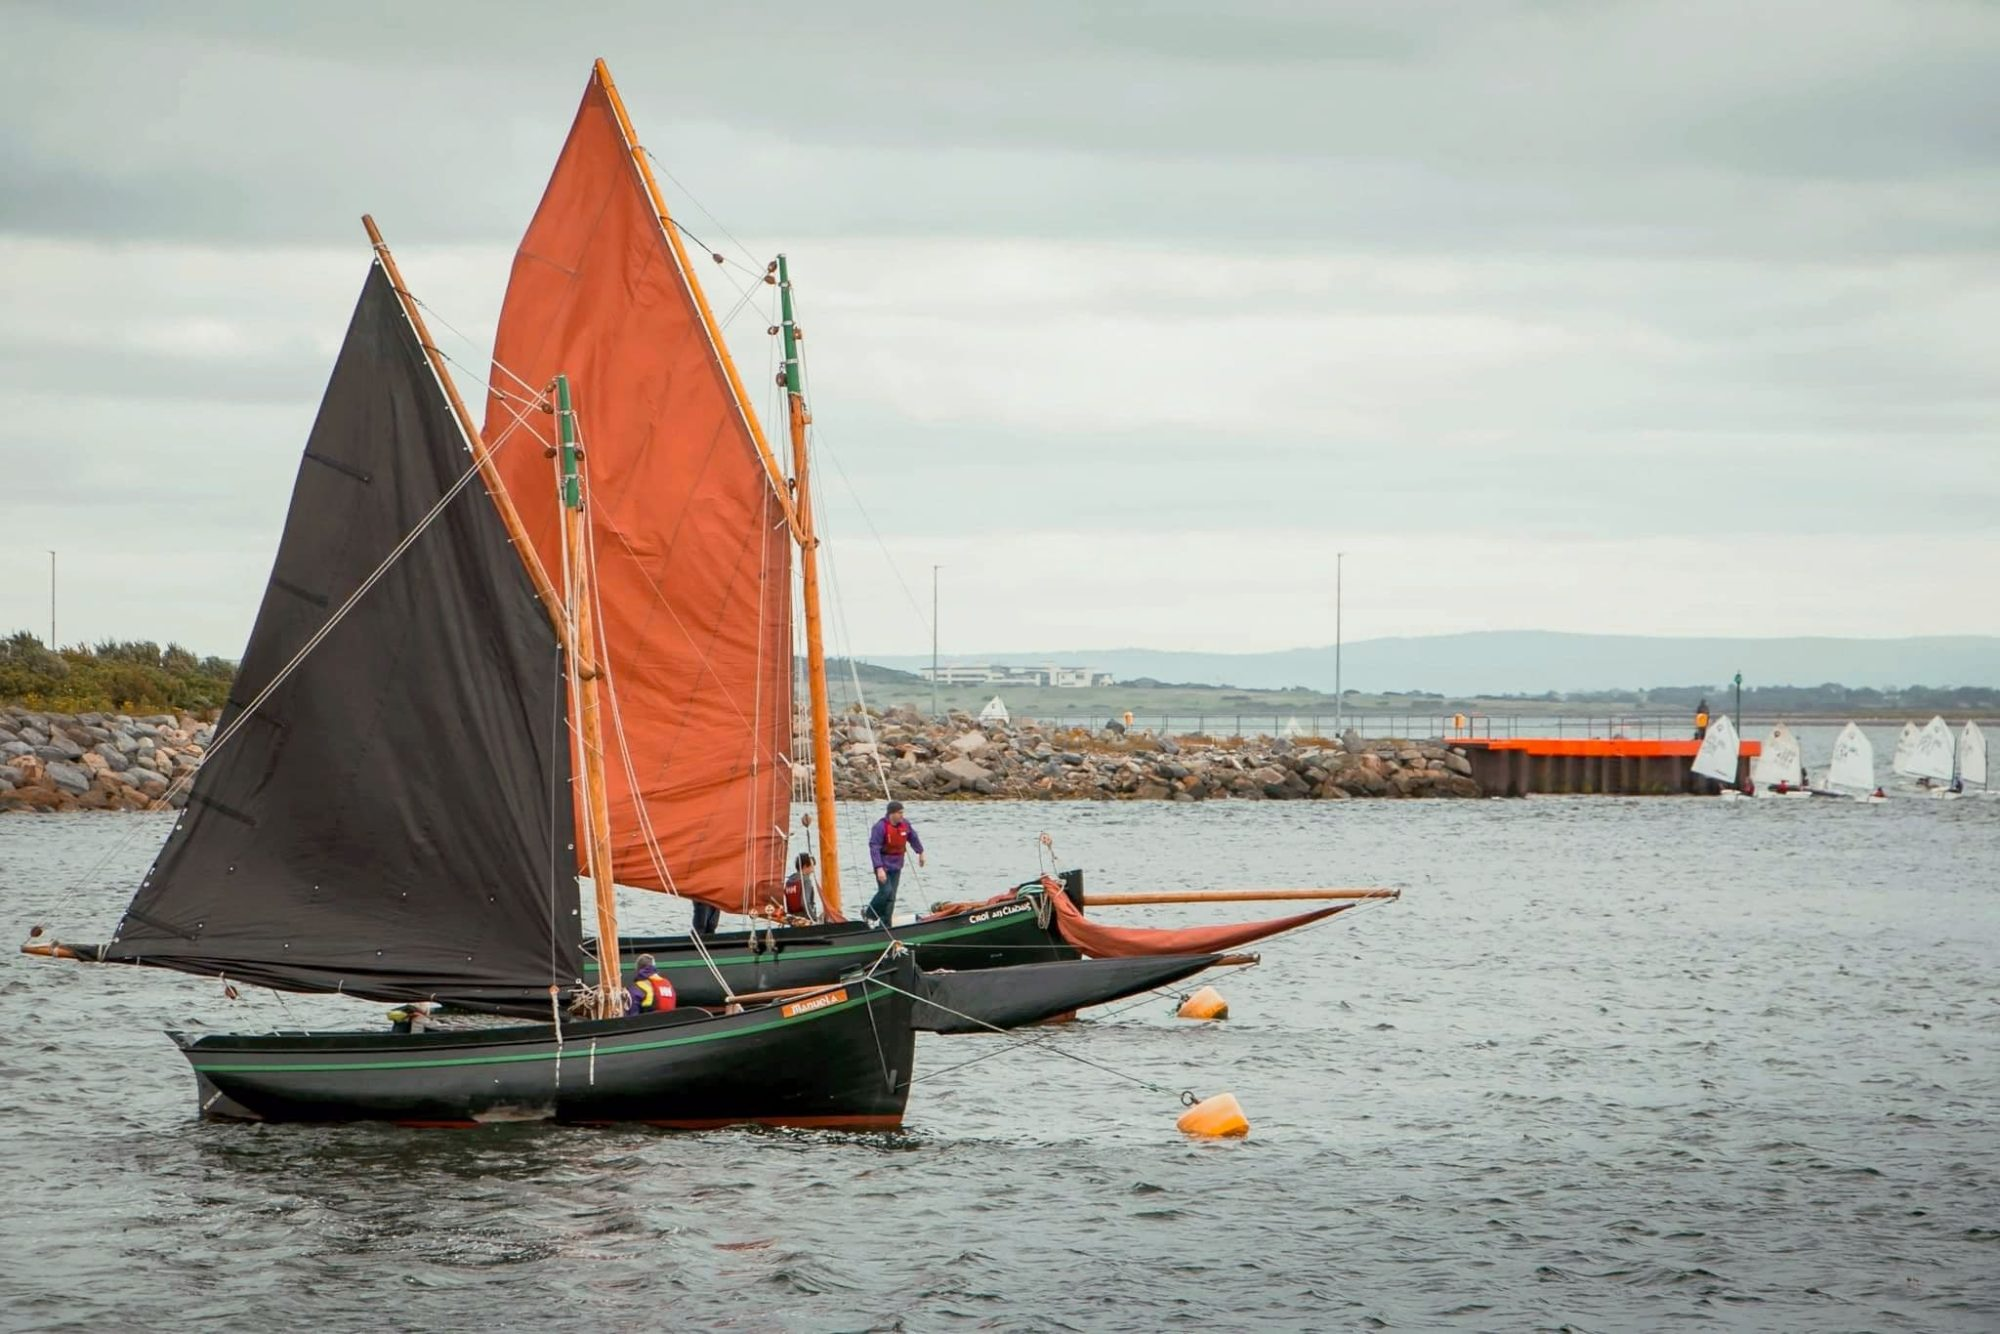 Two Galway Hooker boats sailing on Galway Bay.